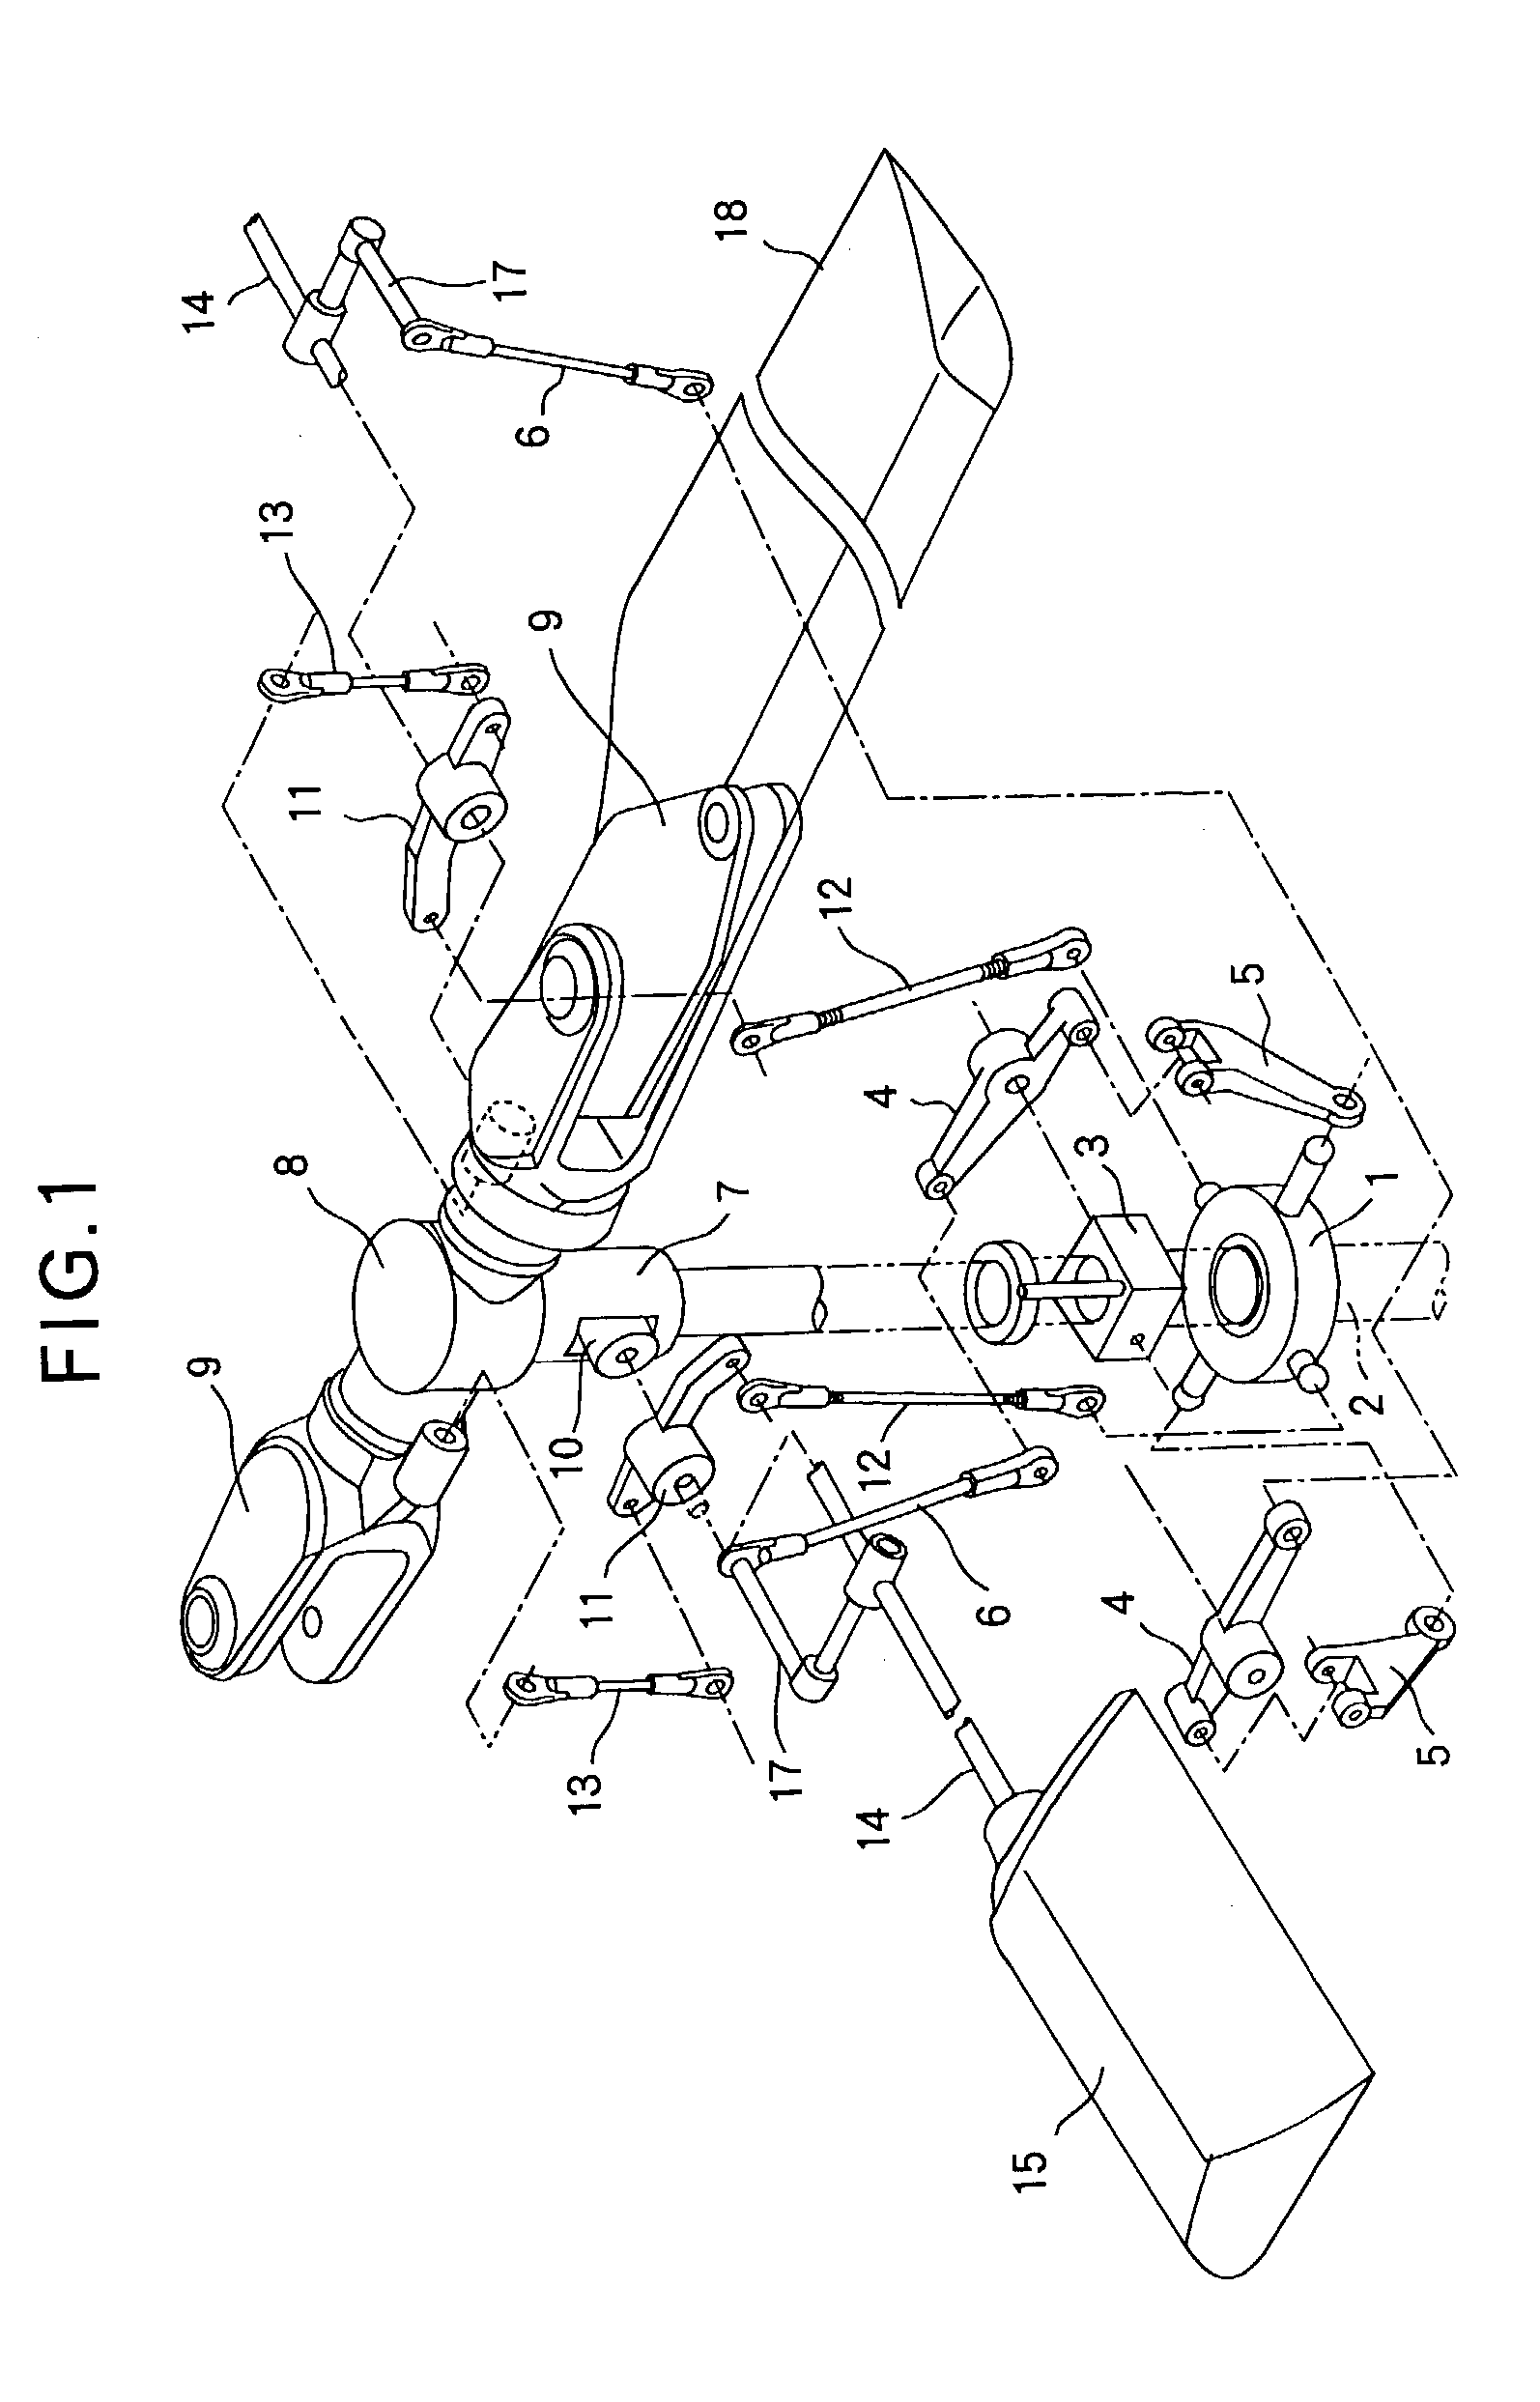 helicopter seesaw with Us20040184915 on Merry Go Round moreover Non Explosive further Toy Coloring Pages in addition Playground equipment early 1900s besides Knex Models Moving2.